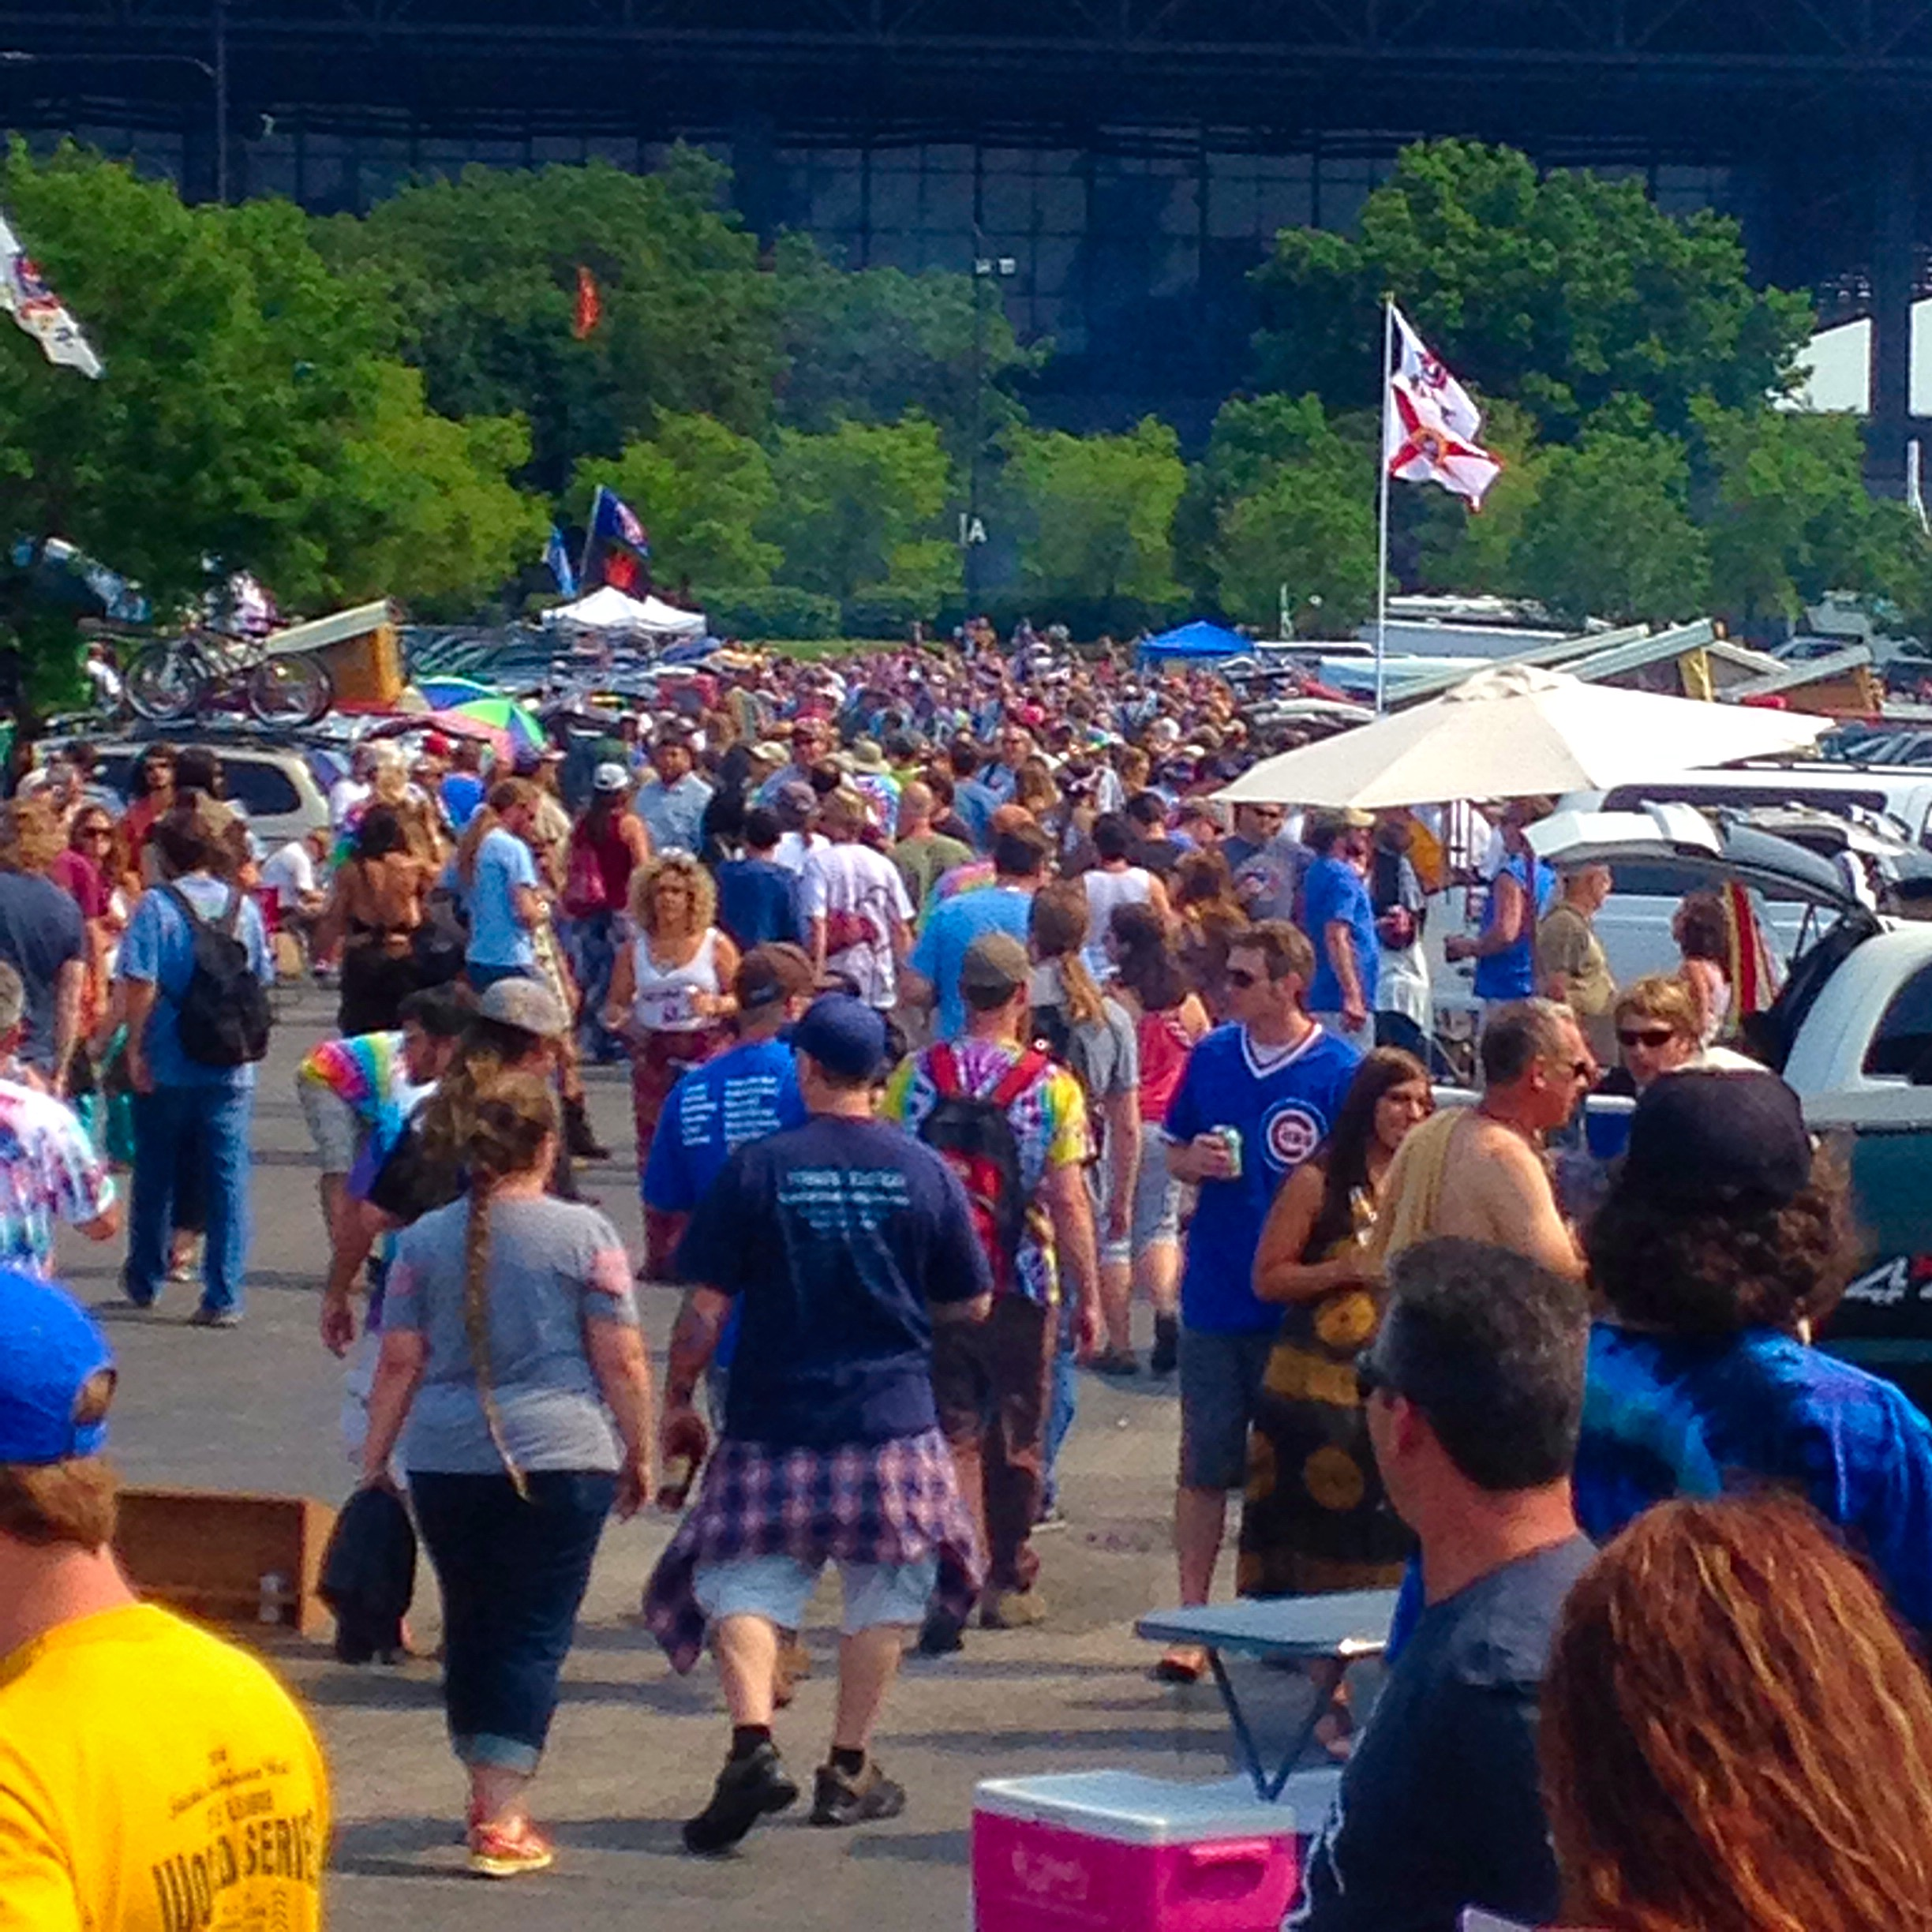 File:Shakedown Street - GD50 - Fare Thee Well-Grateful